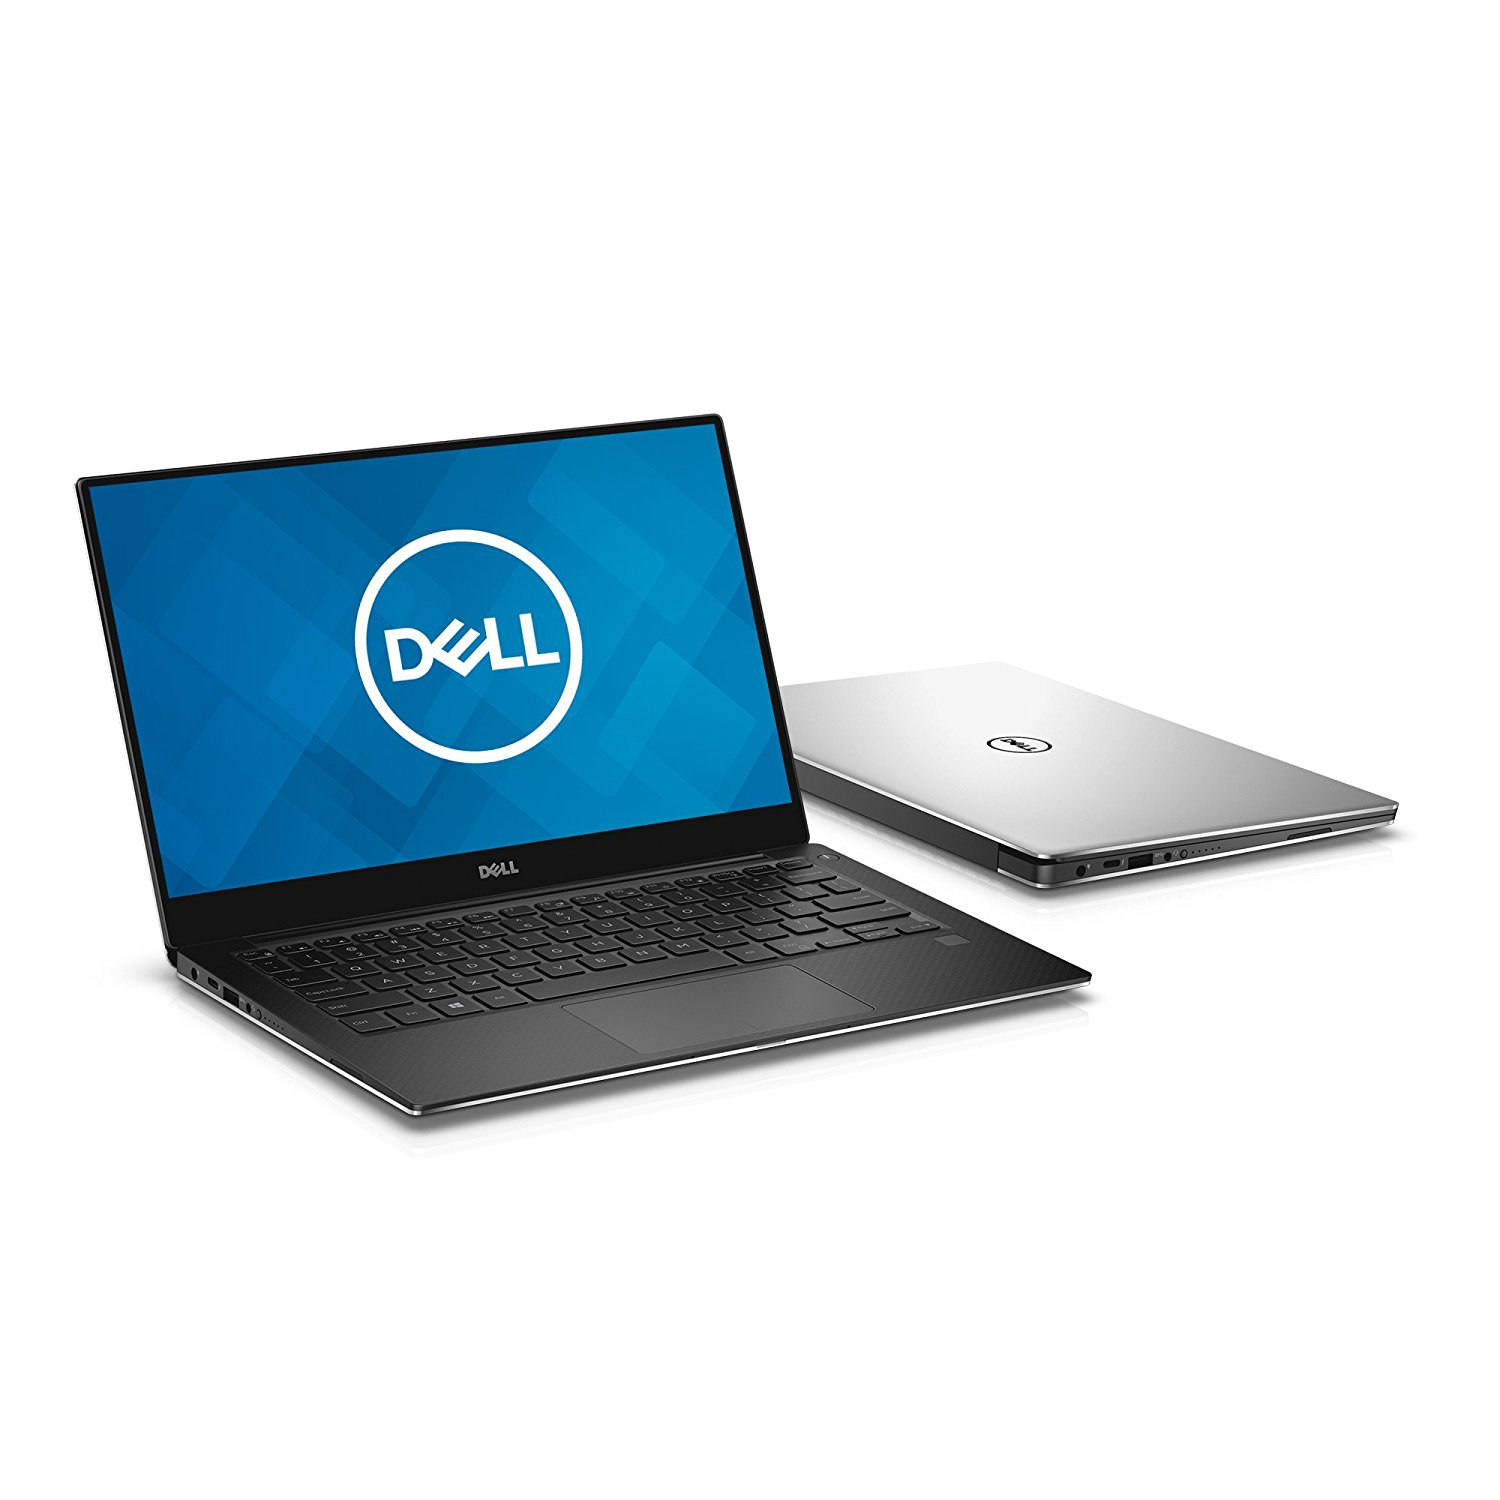 """Dell XPS9360-7758SLV-PUS 13.3"""" Intel Core i7-7560U 8GB 256GB Pie Solid State Drive Windows 10 Home Traditional Laptop"""